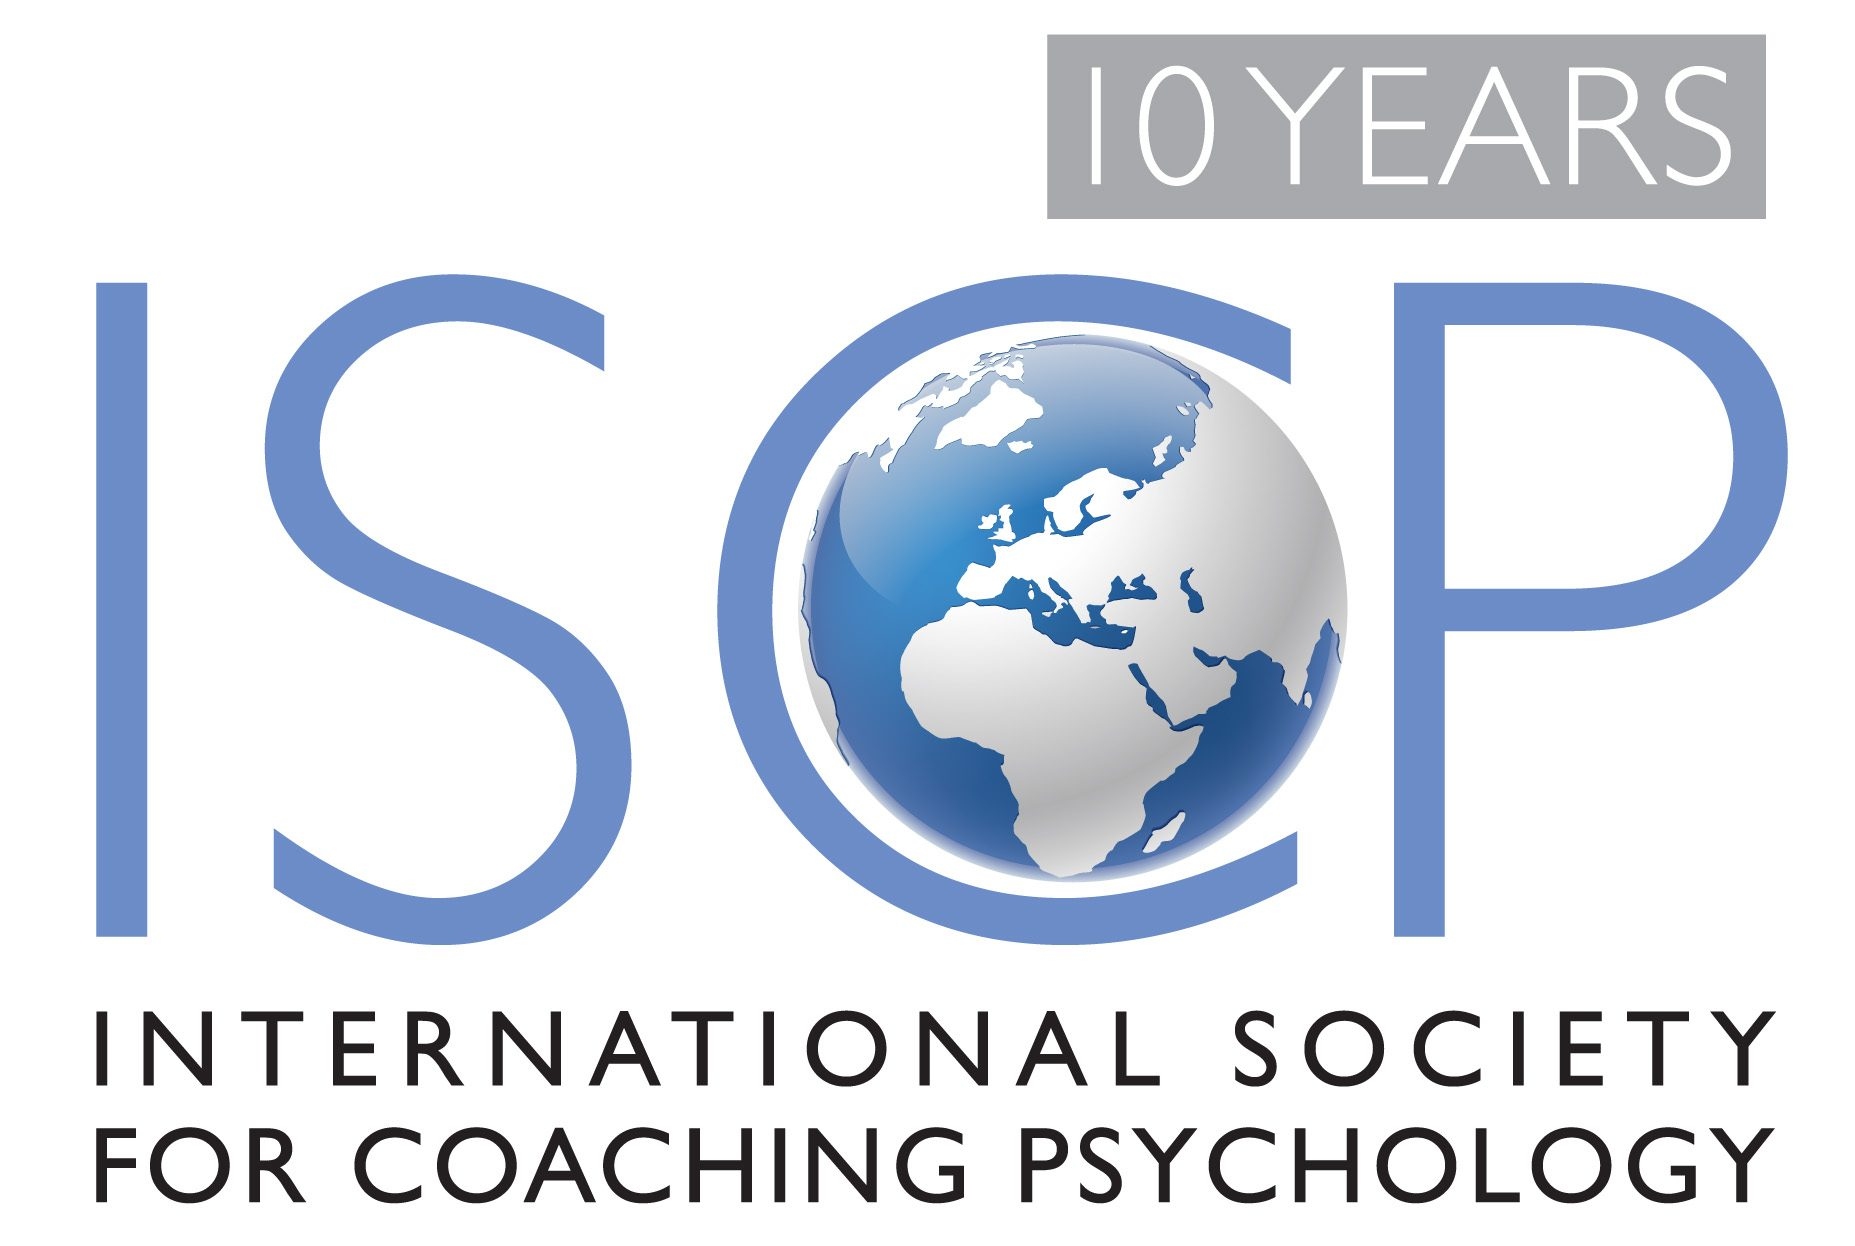 International Society for Coaching Psychology